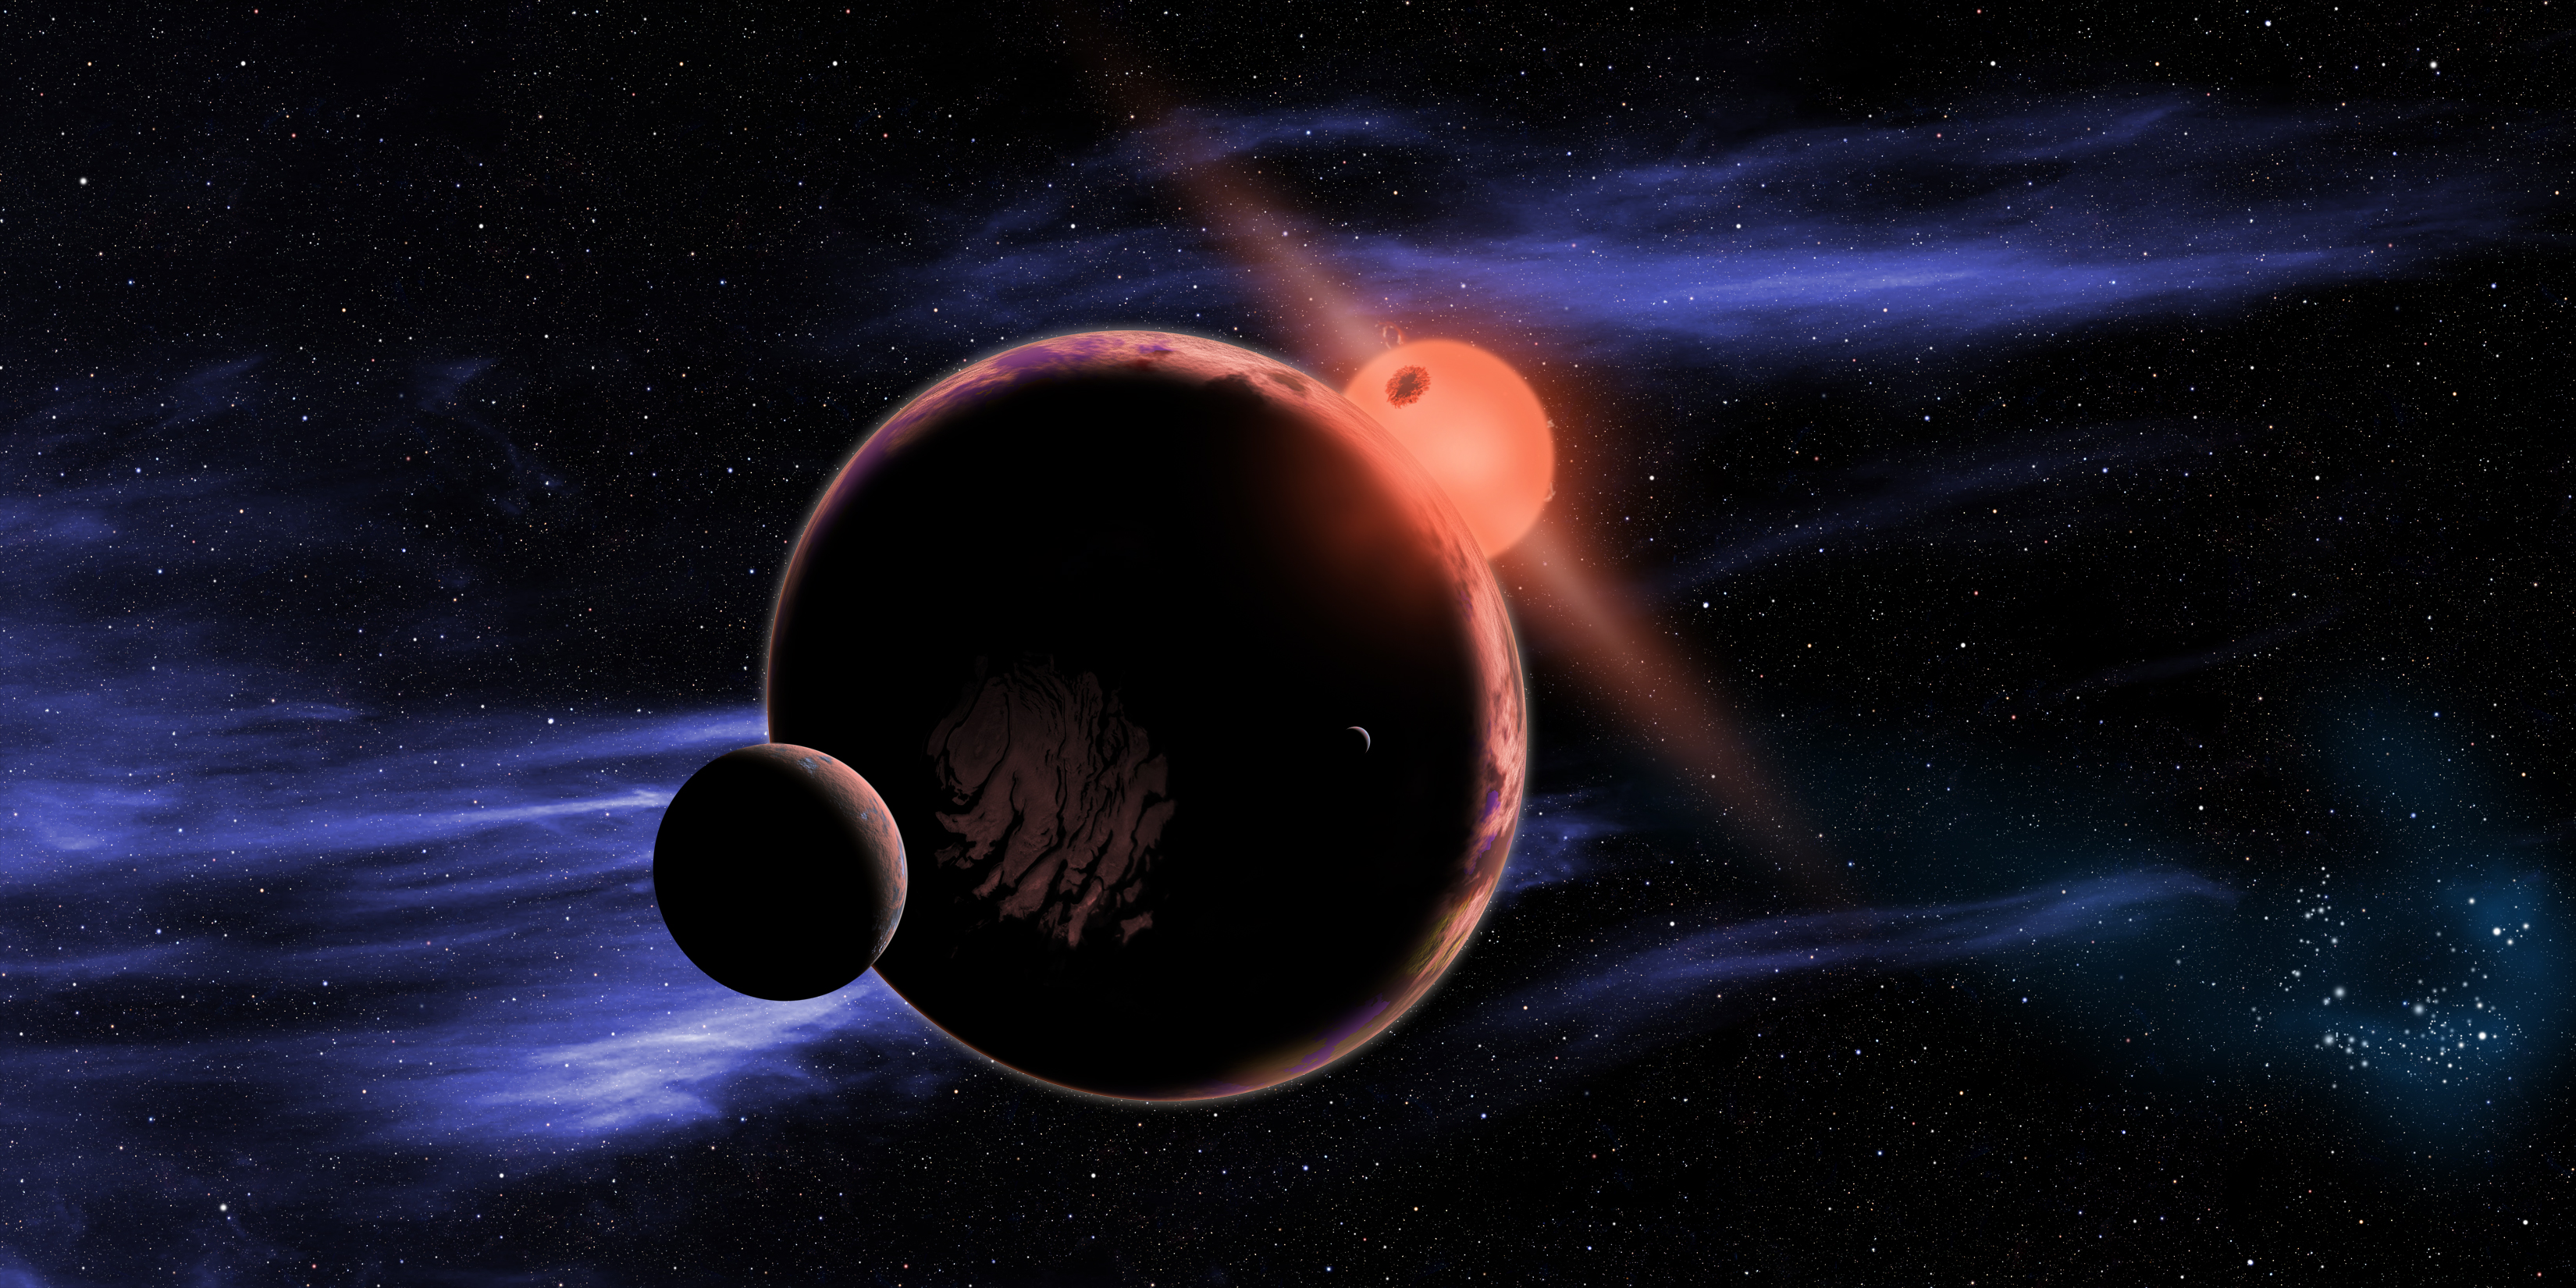 Big News Due: Earth-like Exoplanet Orbiting Nearby Star?